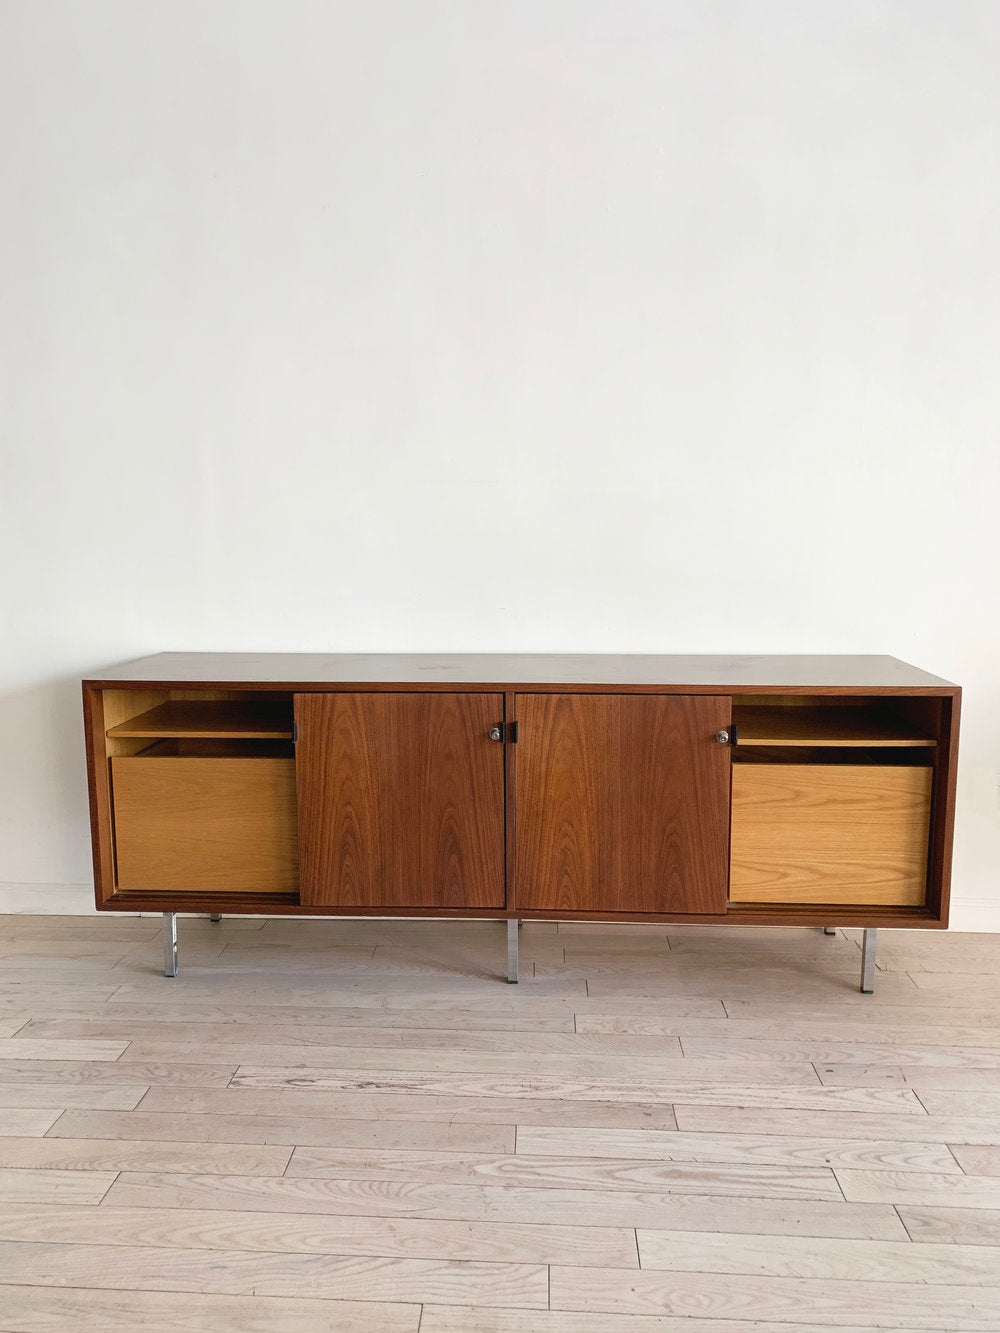 1980s Florence Knoll Walnut Credenza for IBM